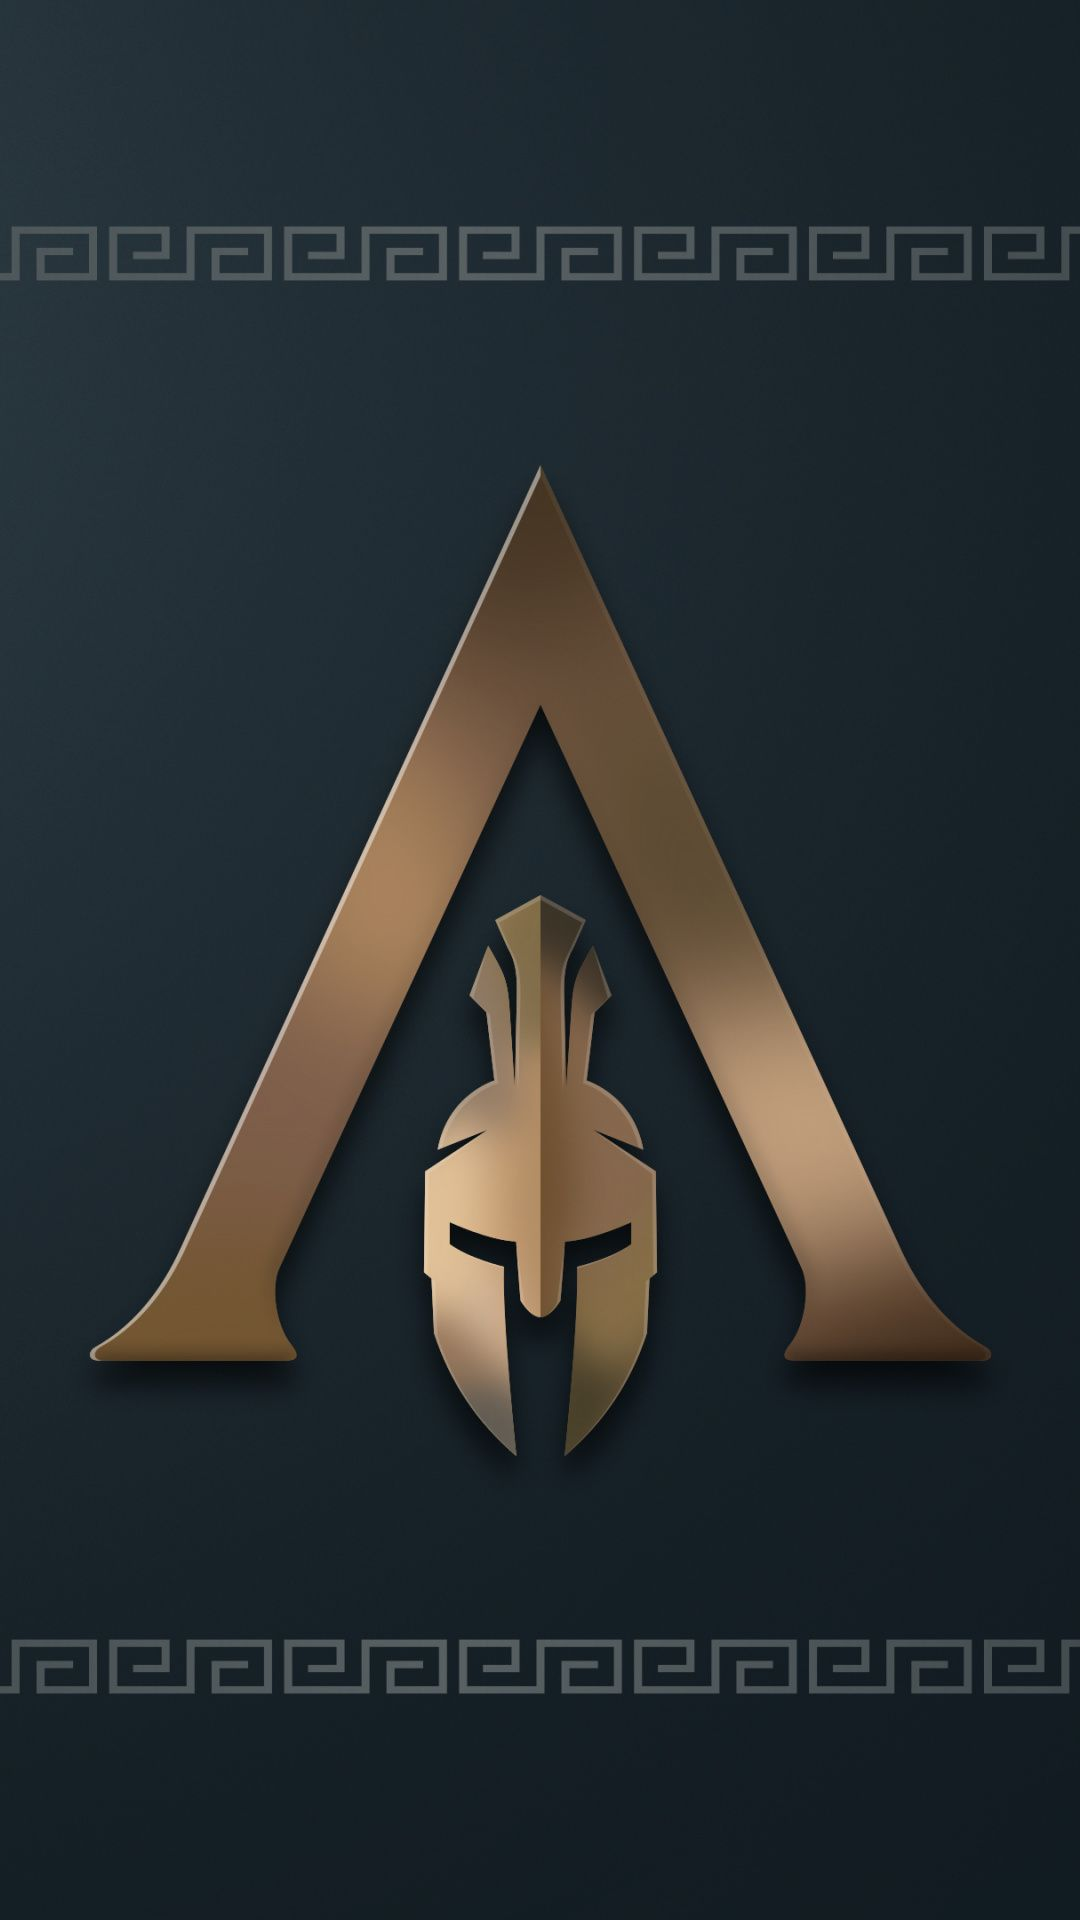 Ubisoft S Game Assassin S Creed Odyssey Minimal Wallpaper